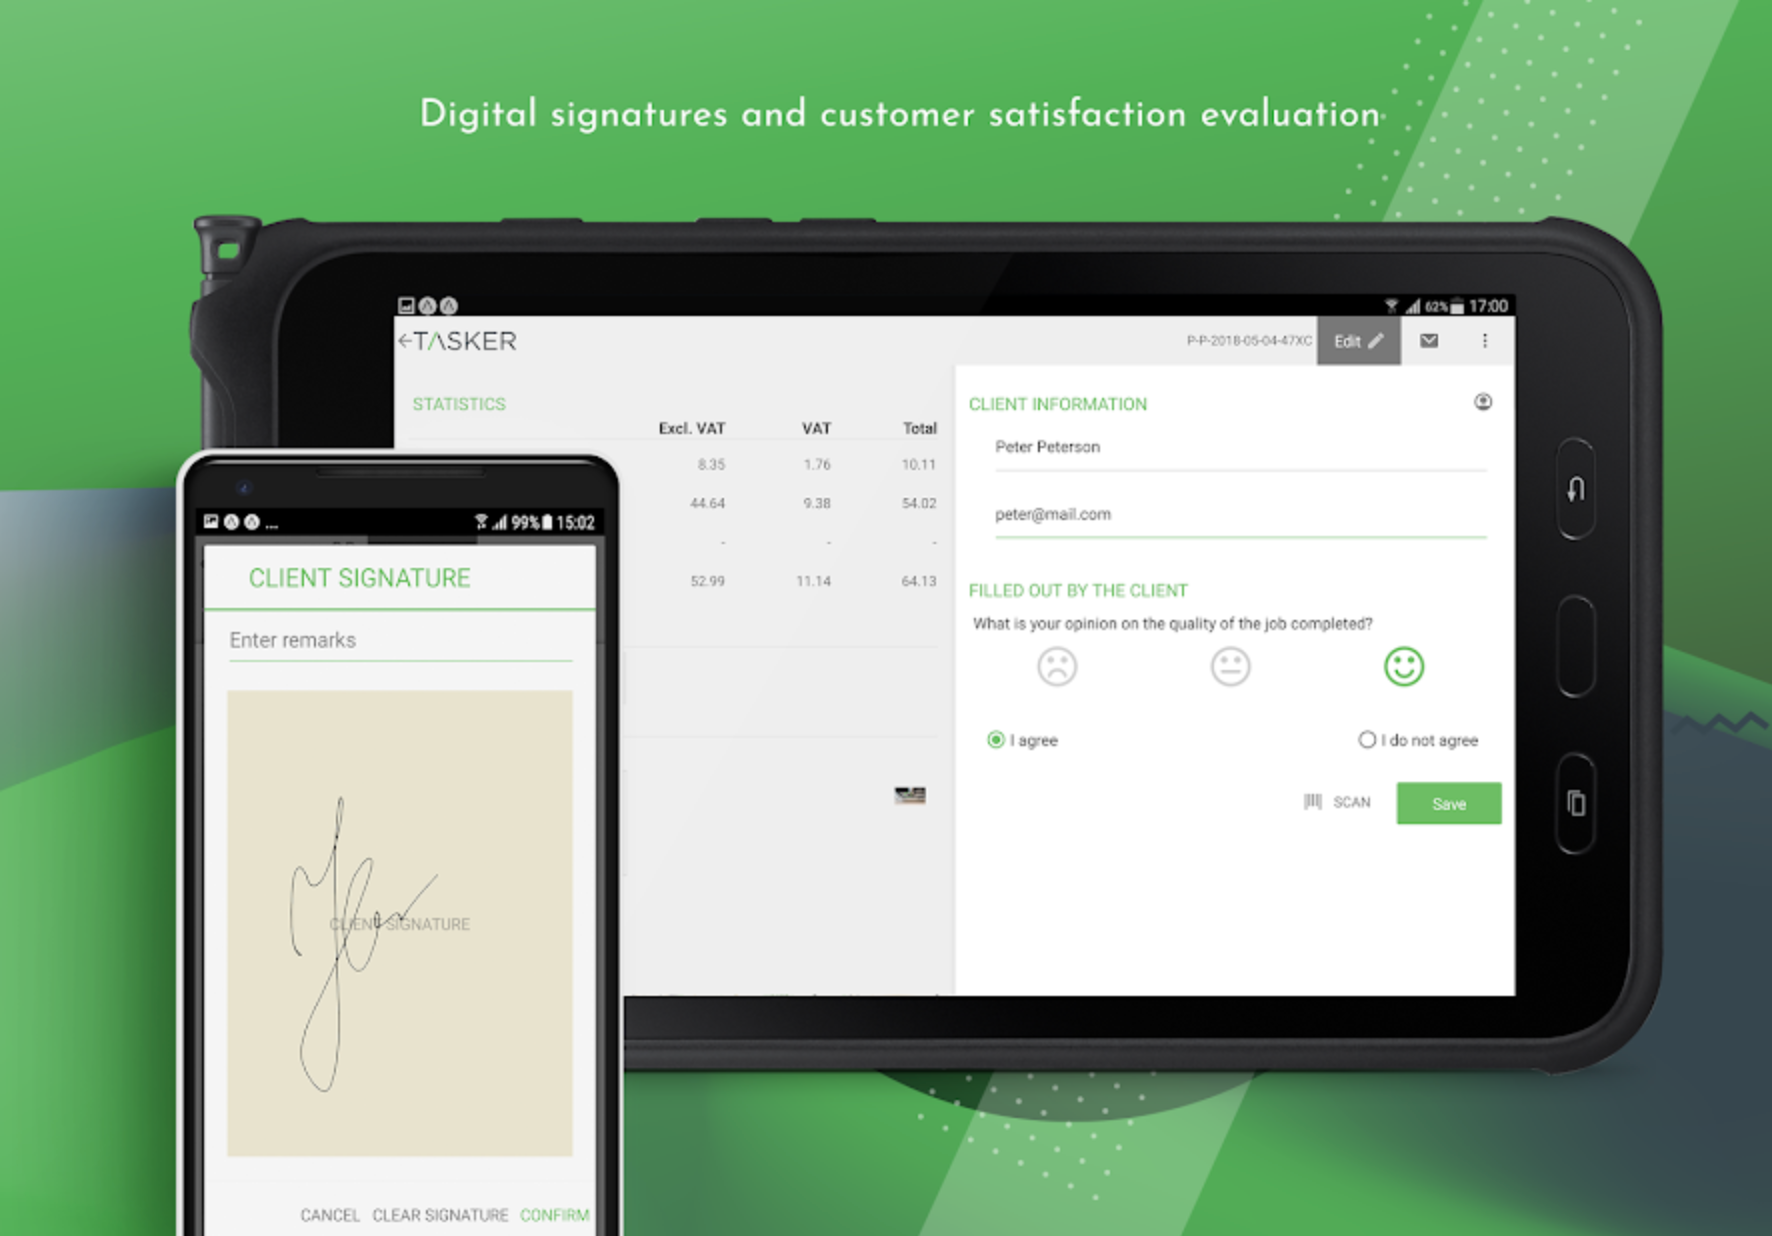 Capture electronic signatures and provide clients with customer satisfaction evaluations while onsite